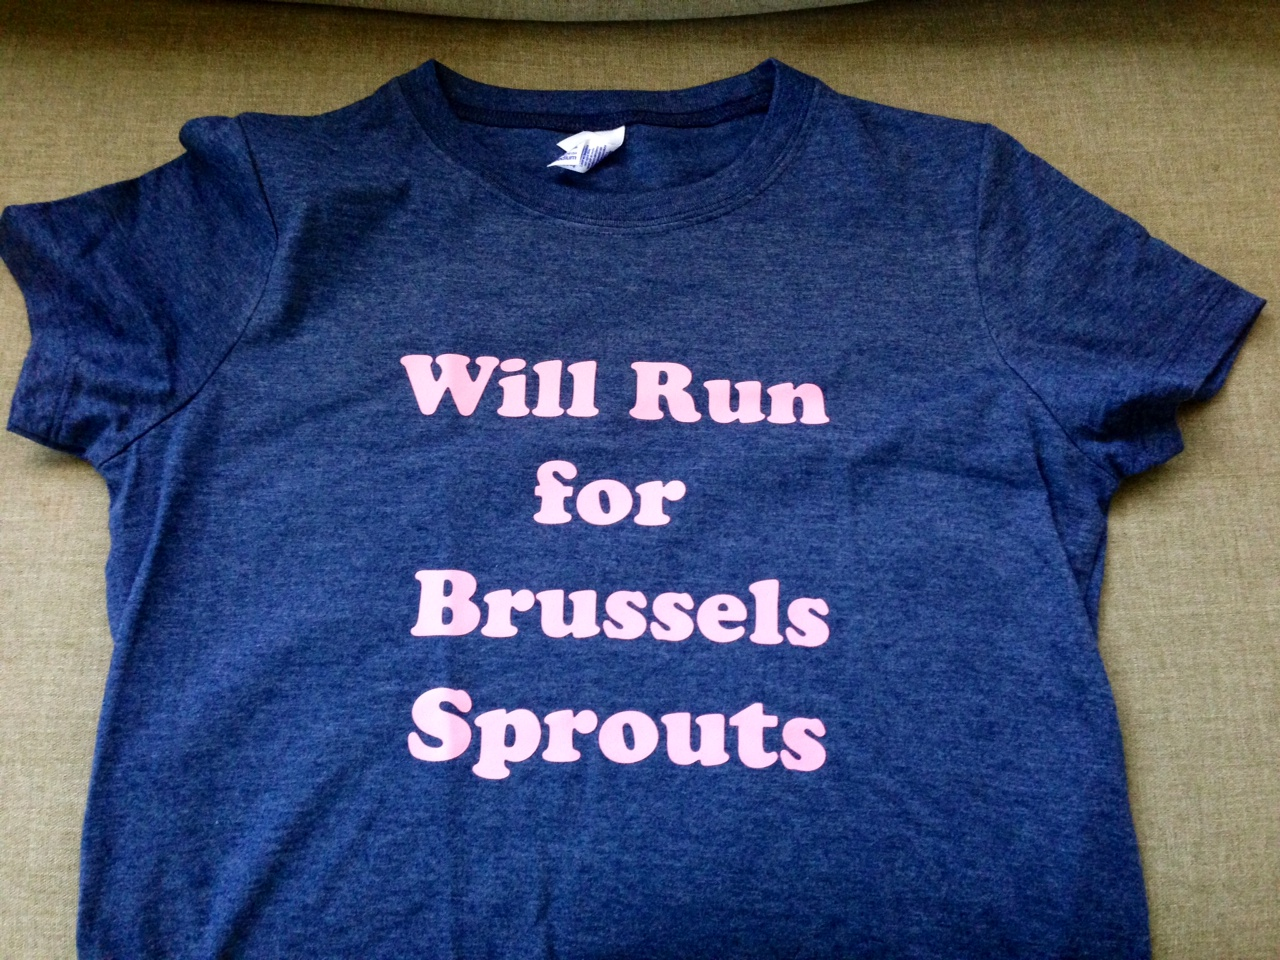 Will Run for Brussels Sprouts!